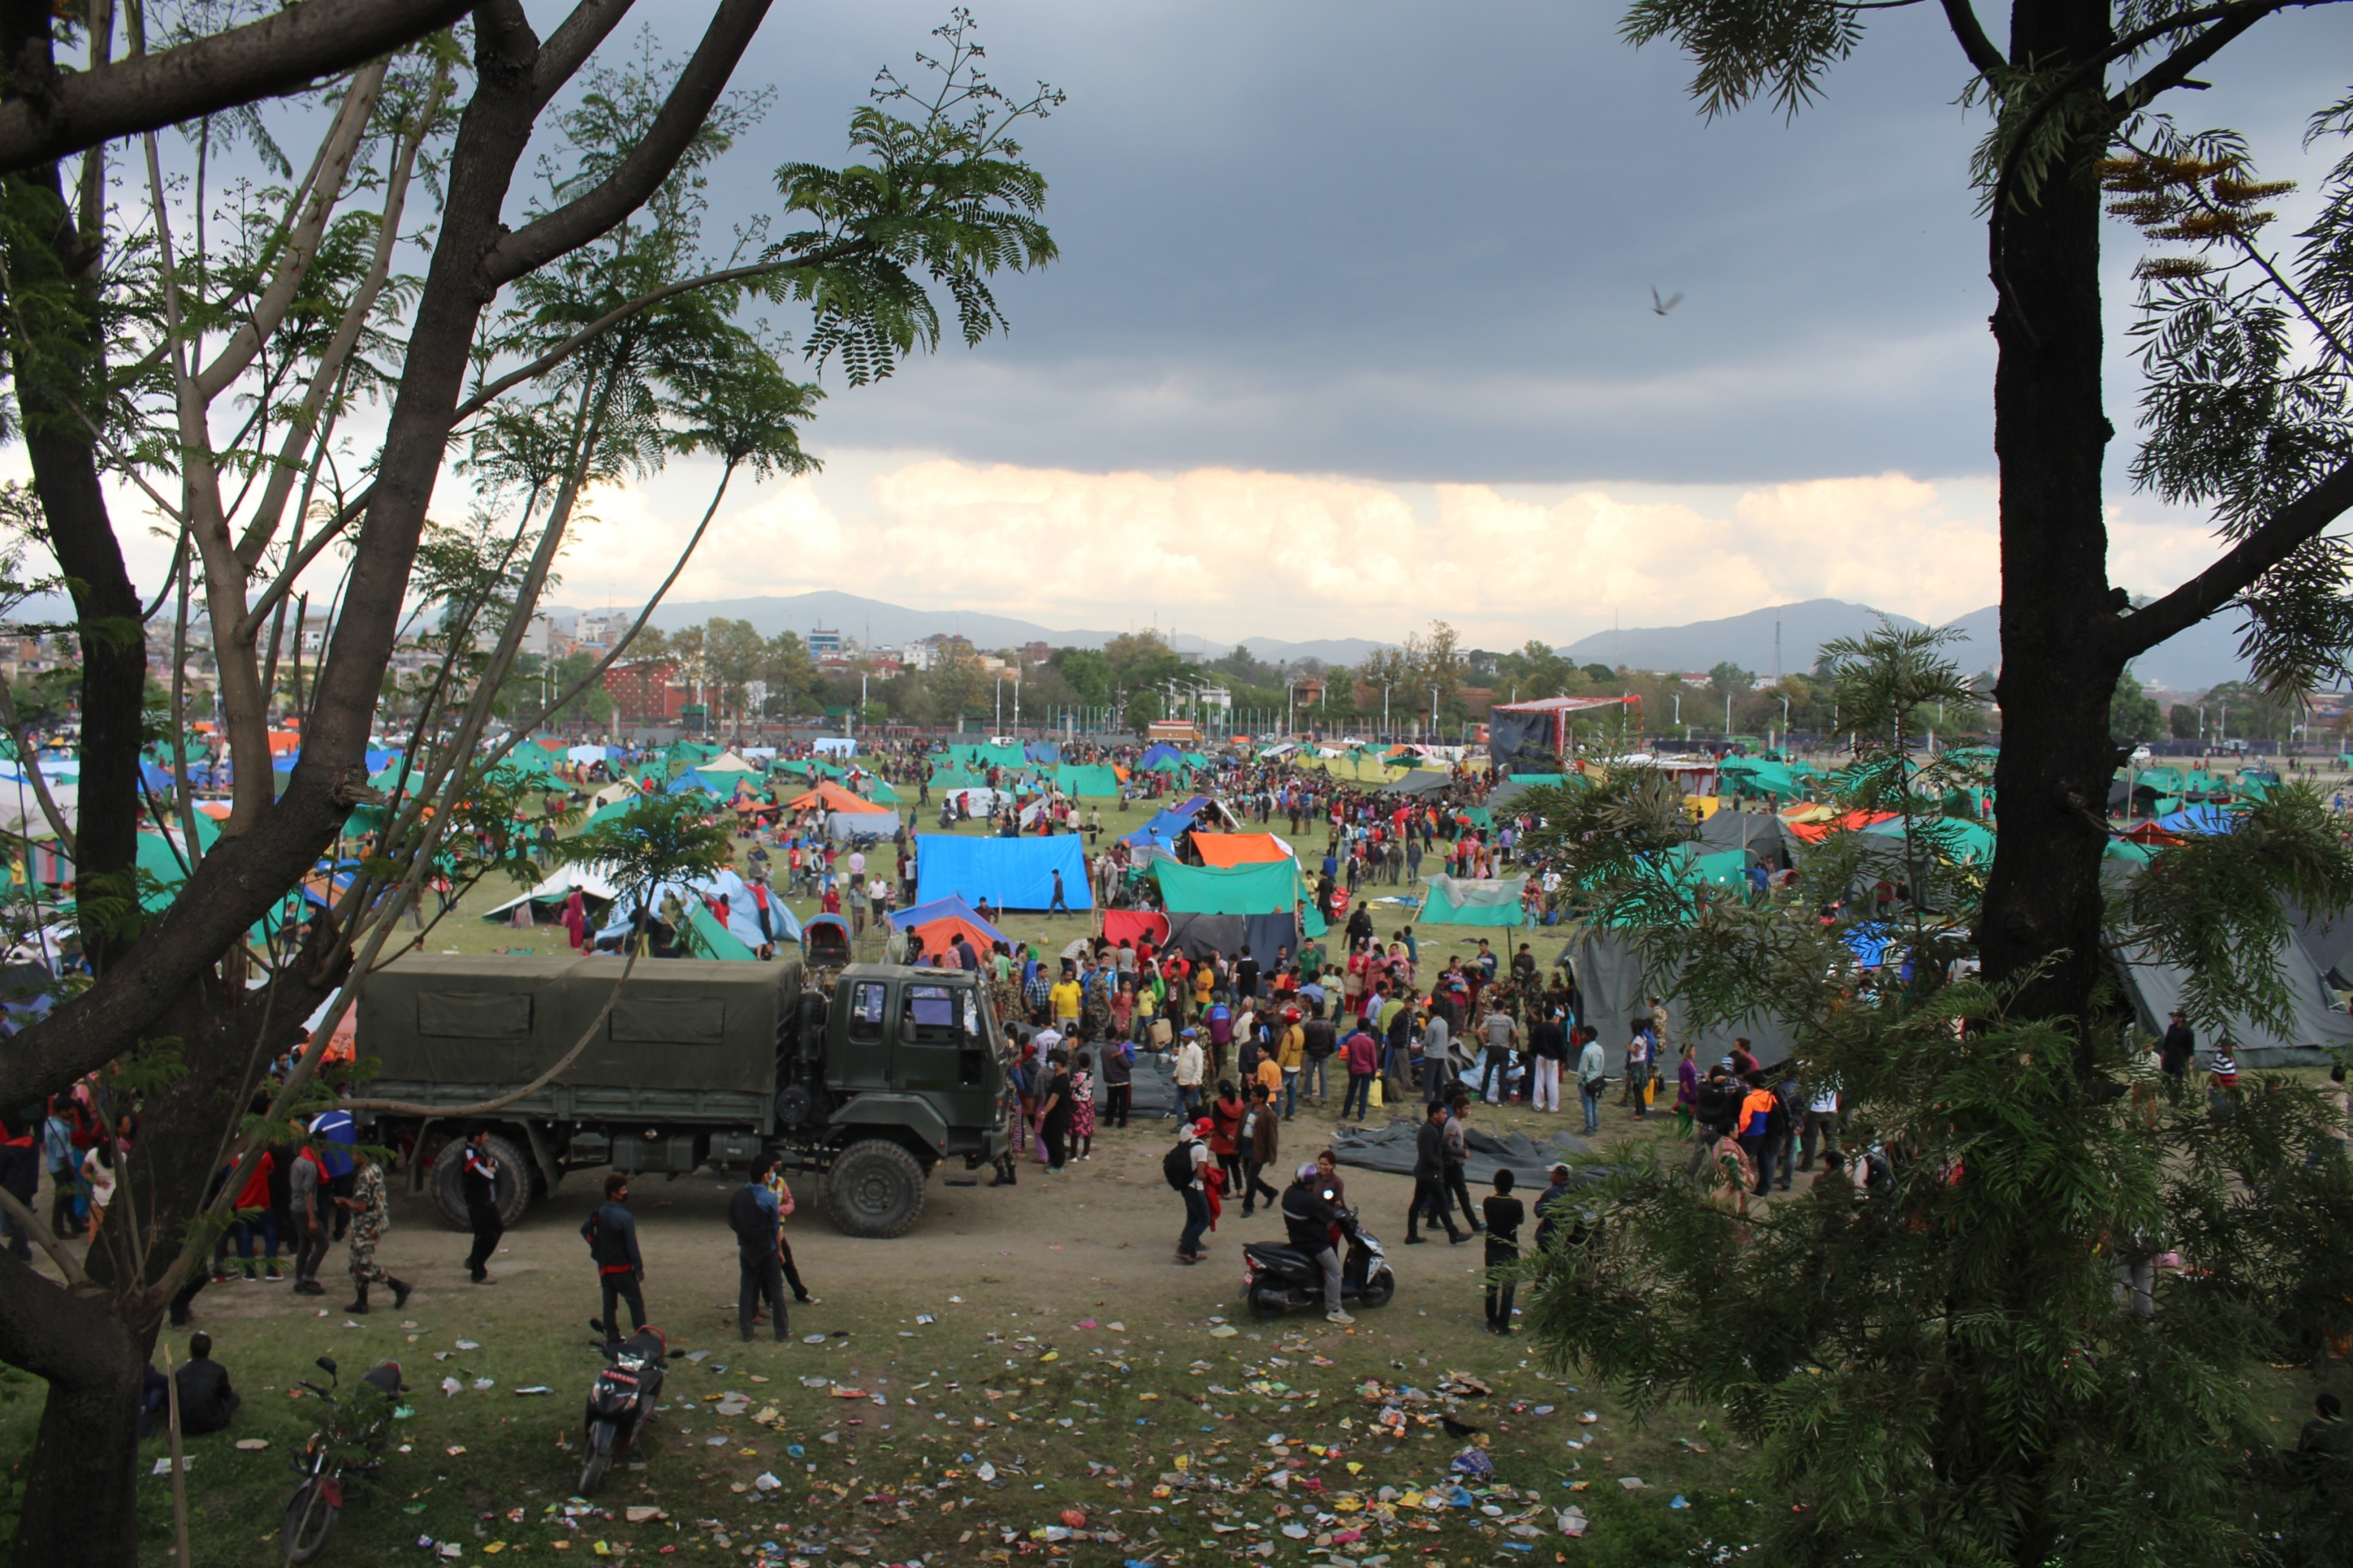 A mass of tented camps at the Tundhikhel area, in the centre of the Nepali capital Kathmandu, is home to the largest number of displaced families after a 7.8-magnitude earthquake struck on 25 April 2015. Local NGOs estimate more than 40,000 families live